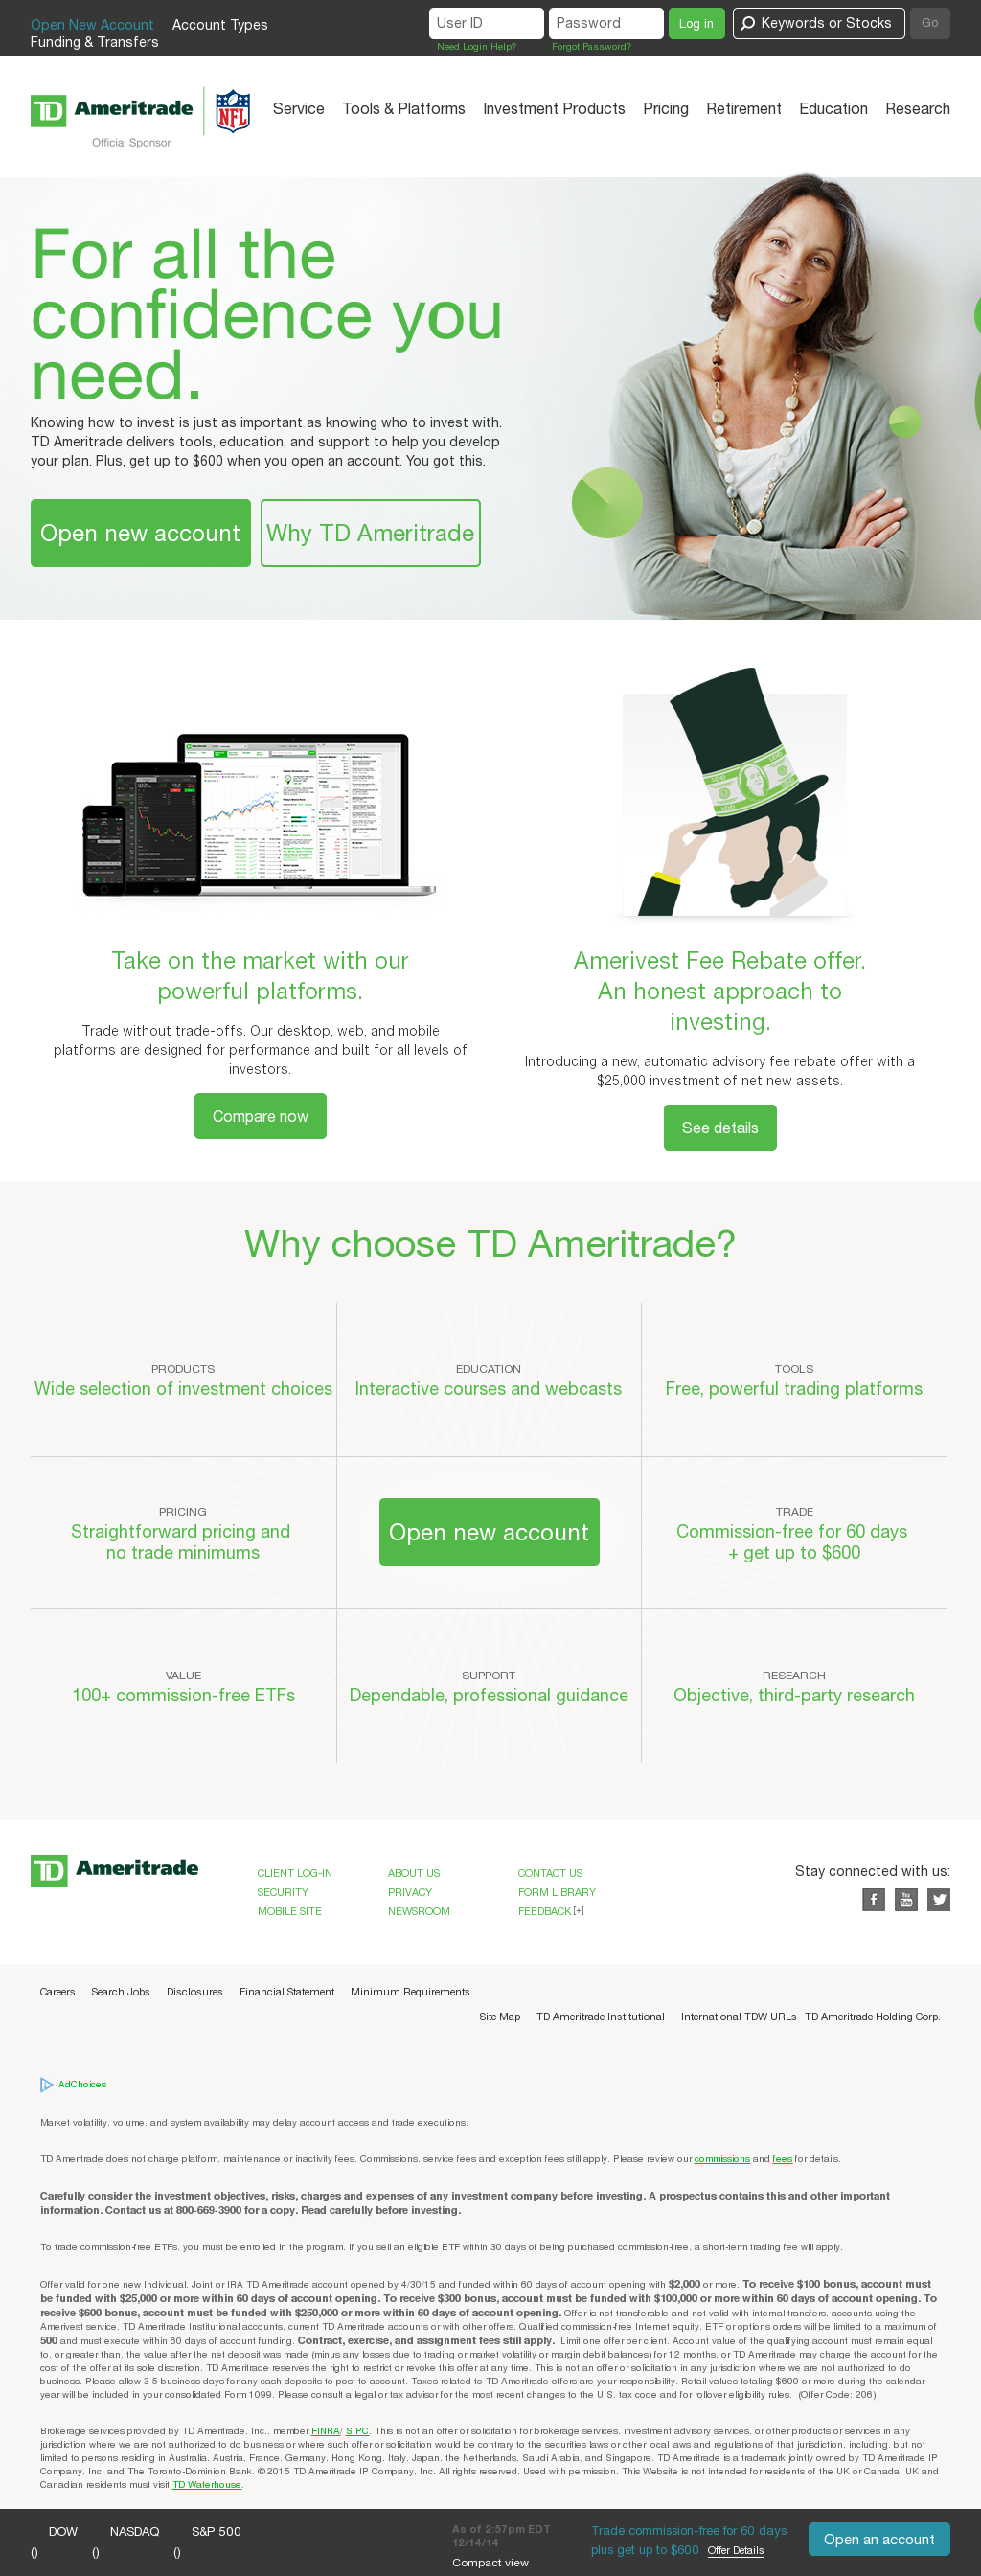 TD Ameritrade Competitors, Revenue and Employees - Owler Company Profile